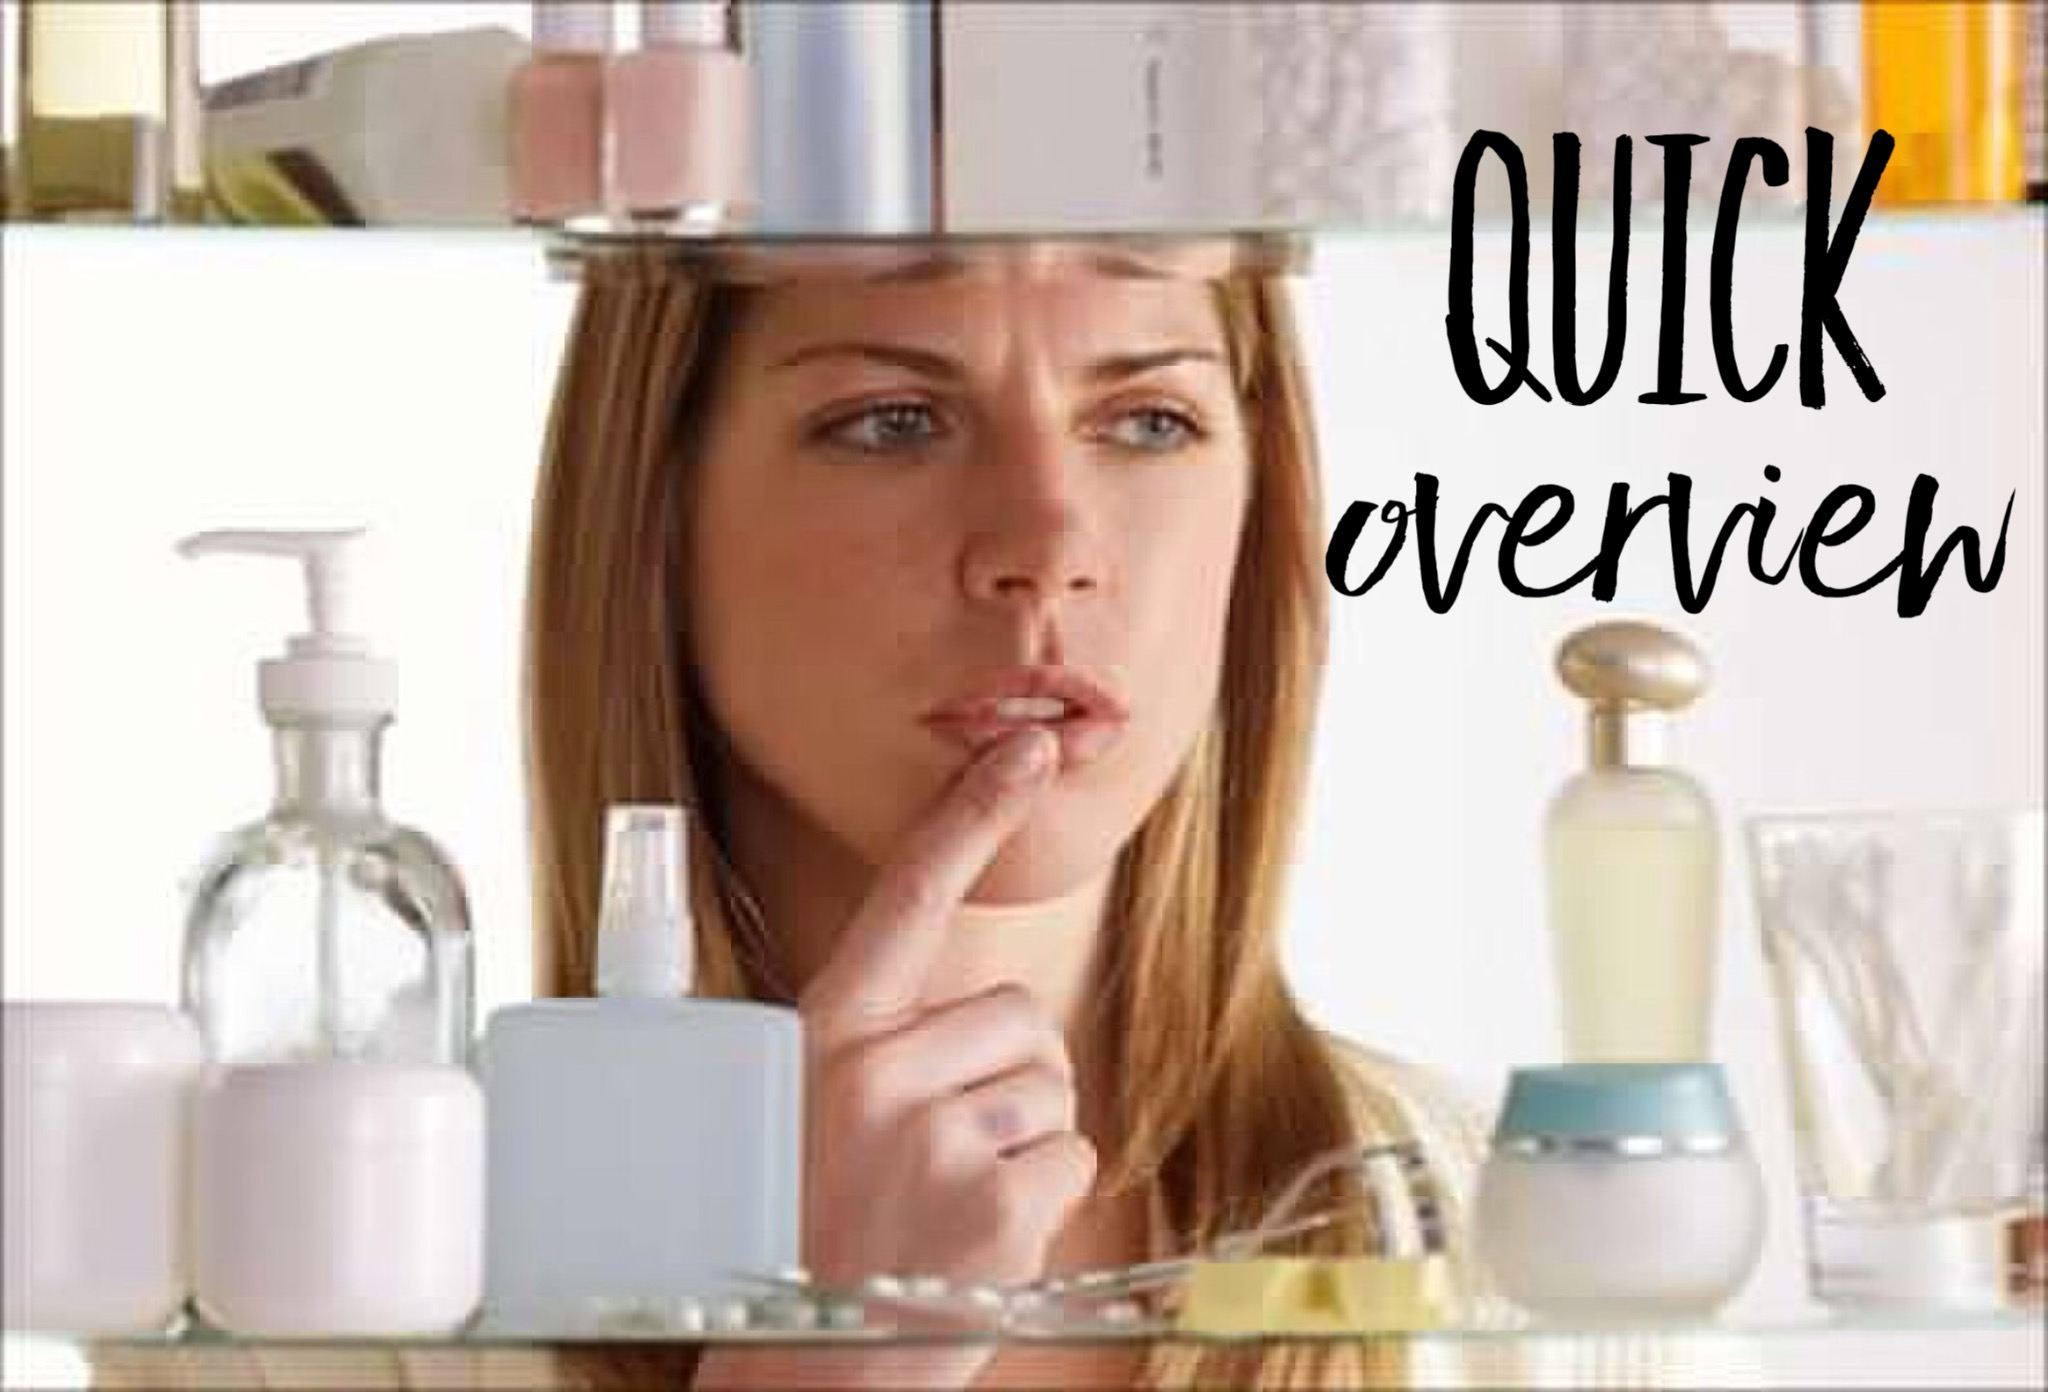 QUICK OVERVIEW – CORRECT ORDER OF SKINCARE PRODUCTS